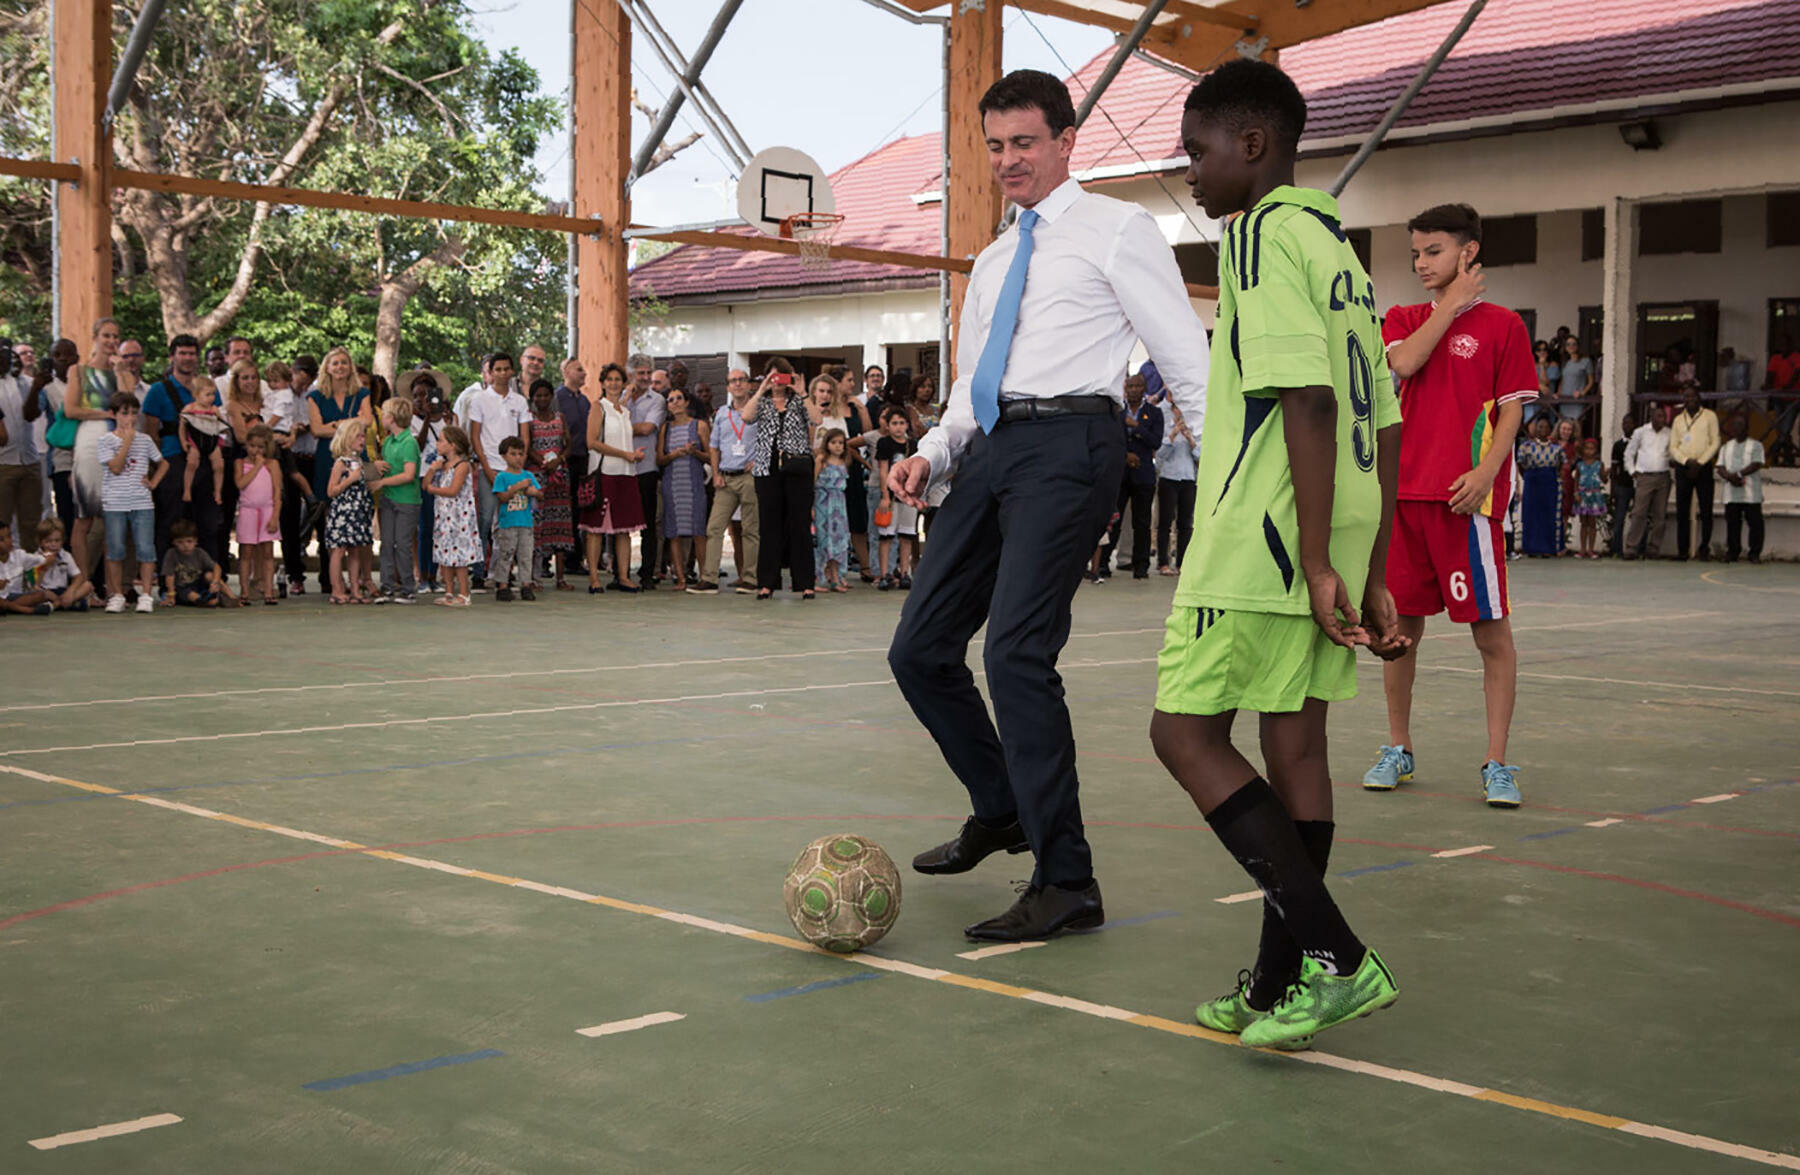 French Prime Minister Manuel Valls plays football with students at the lycée français in Accra